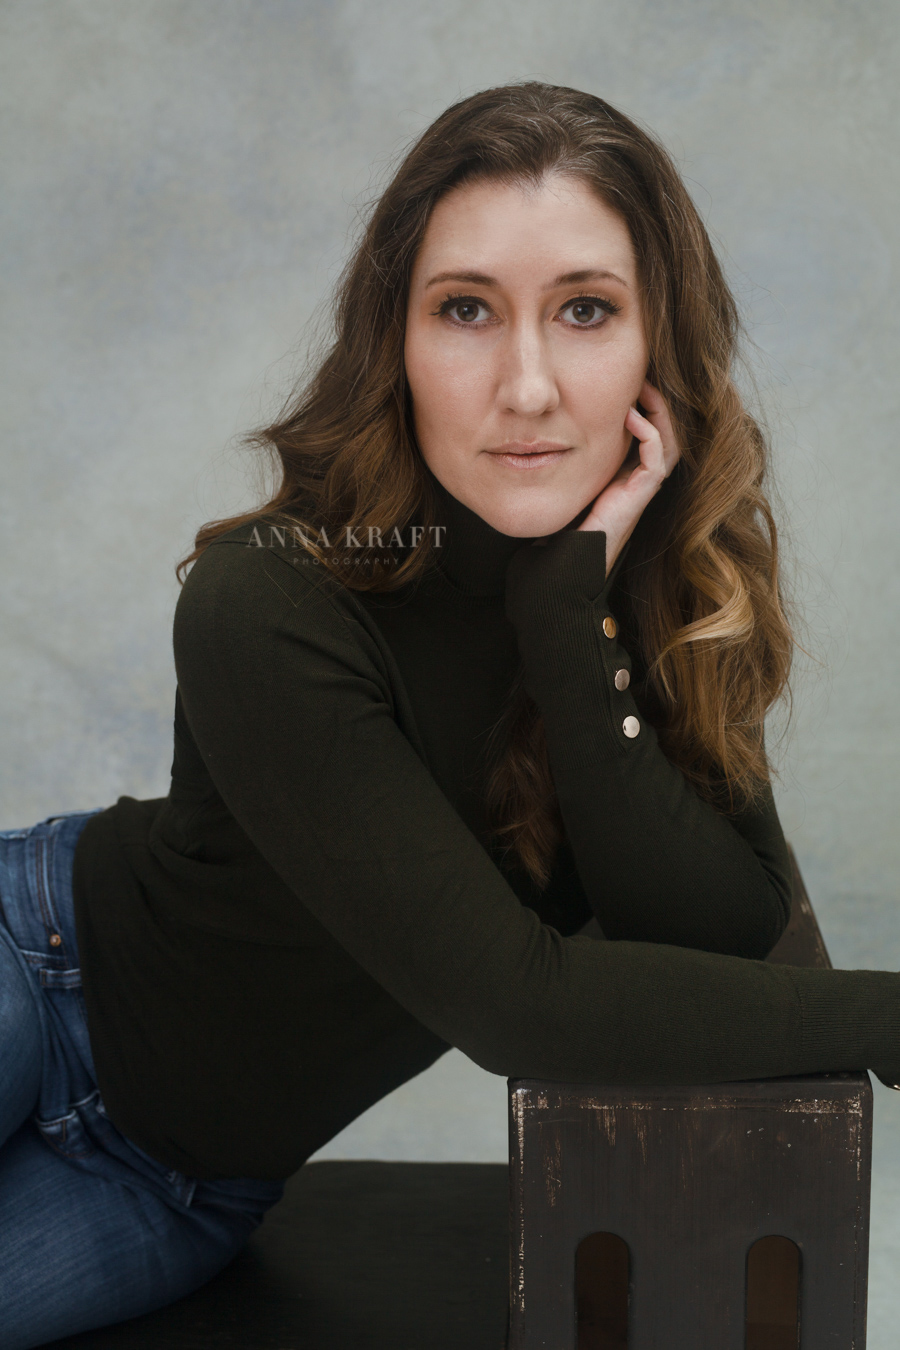 anna_kraft_photography_georgetown_square_studio_motherhood_beauty_portrait-4.jpg